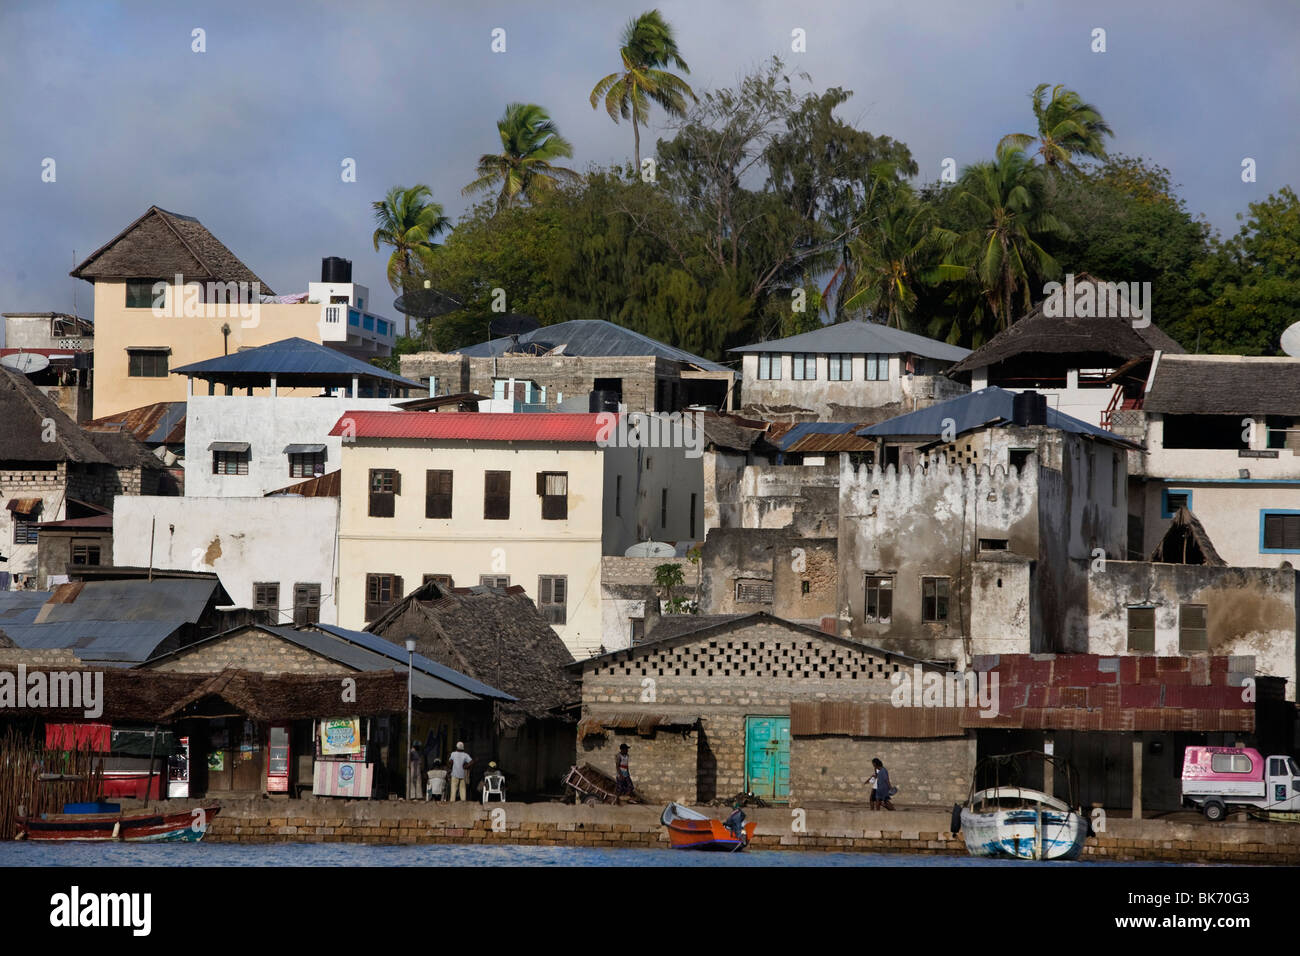 A general view of the sean front of the town of Lamu Island taken on October 10, 2009, Kenya. Stock Photo